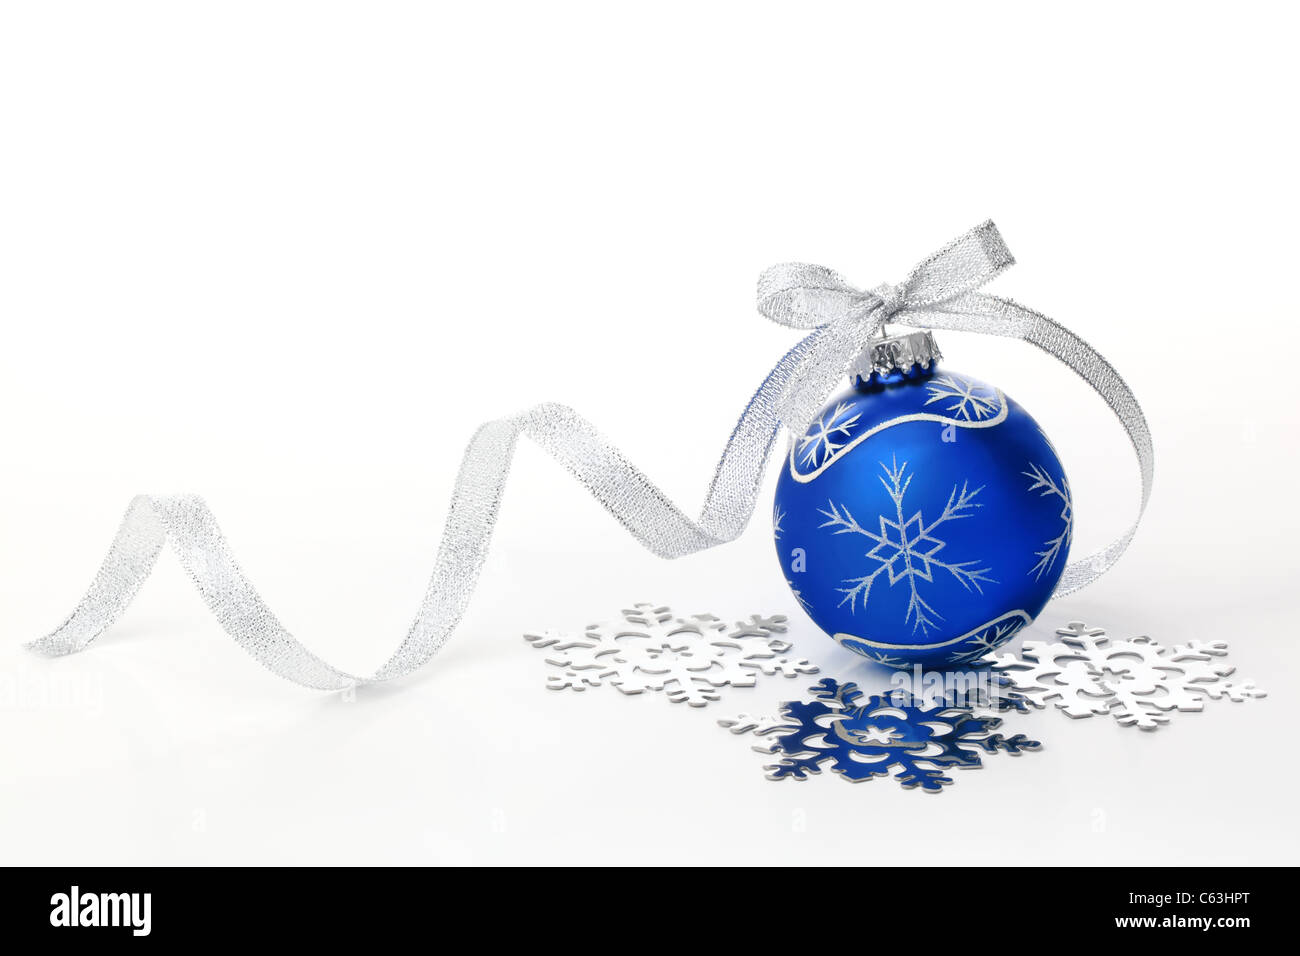 Blue christmas ball with silver ribbon bow and snowflake on white background. - Stock Image